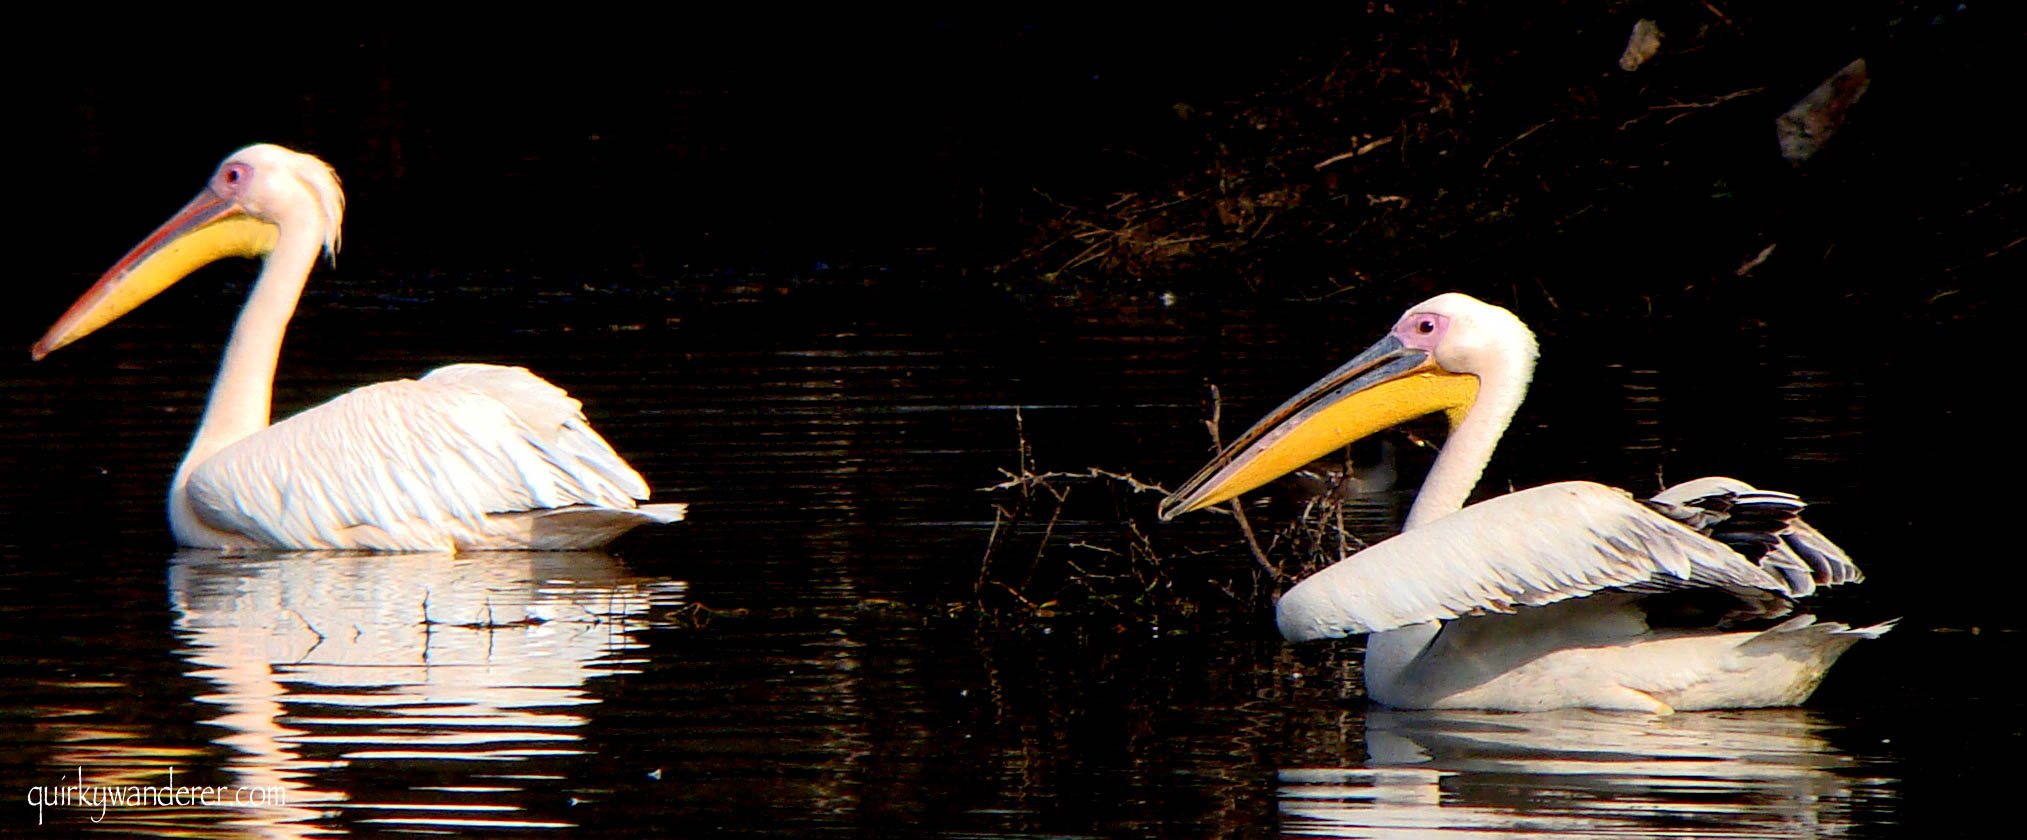 Pelicans at Keoladeo National Park